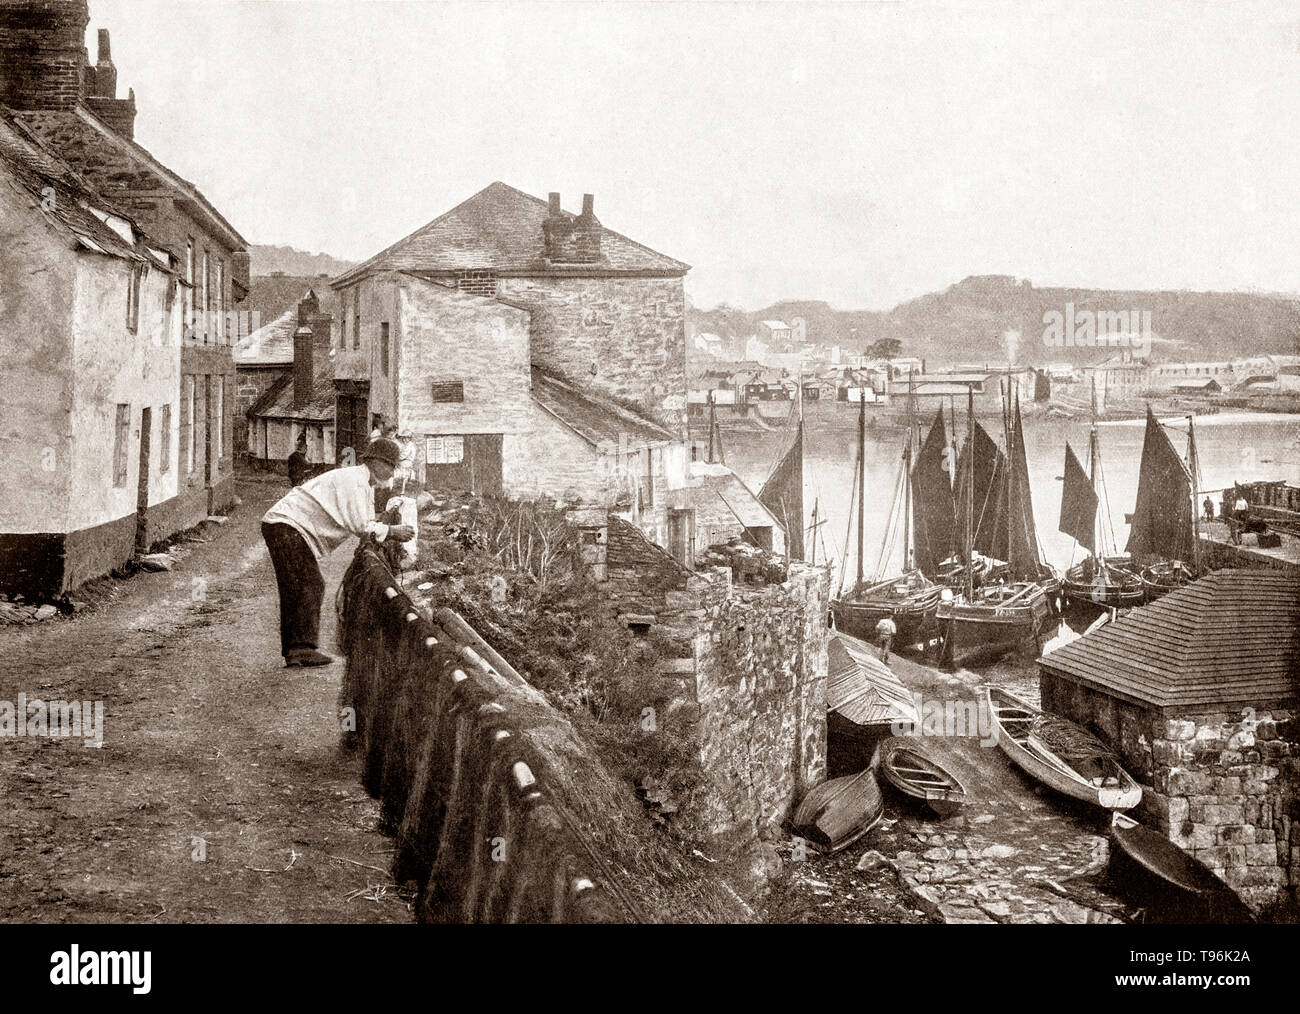 A late 19th Century view of Newlyn, a seaside town and fishing port in south-west Cornwall, England. It lies on the shore of Mount's Bay and forms a small conurbation with the neighbouring town of Penzance. The principal industry was fishing, some of which can be seen in the the harbour. - Stock Image